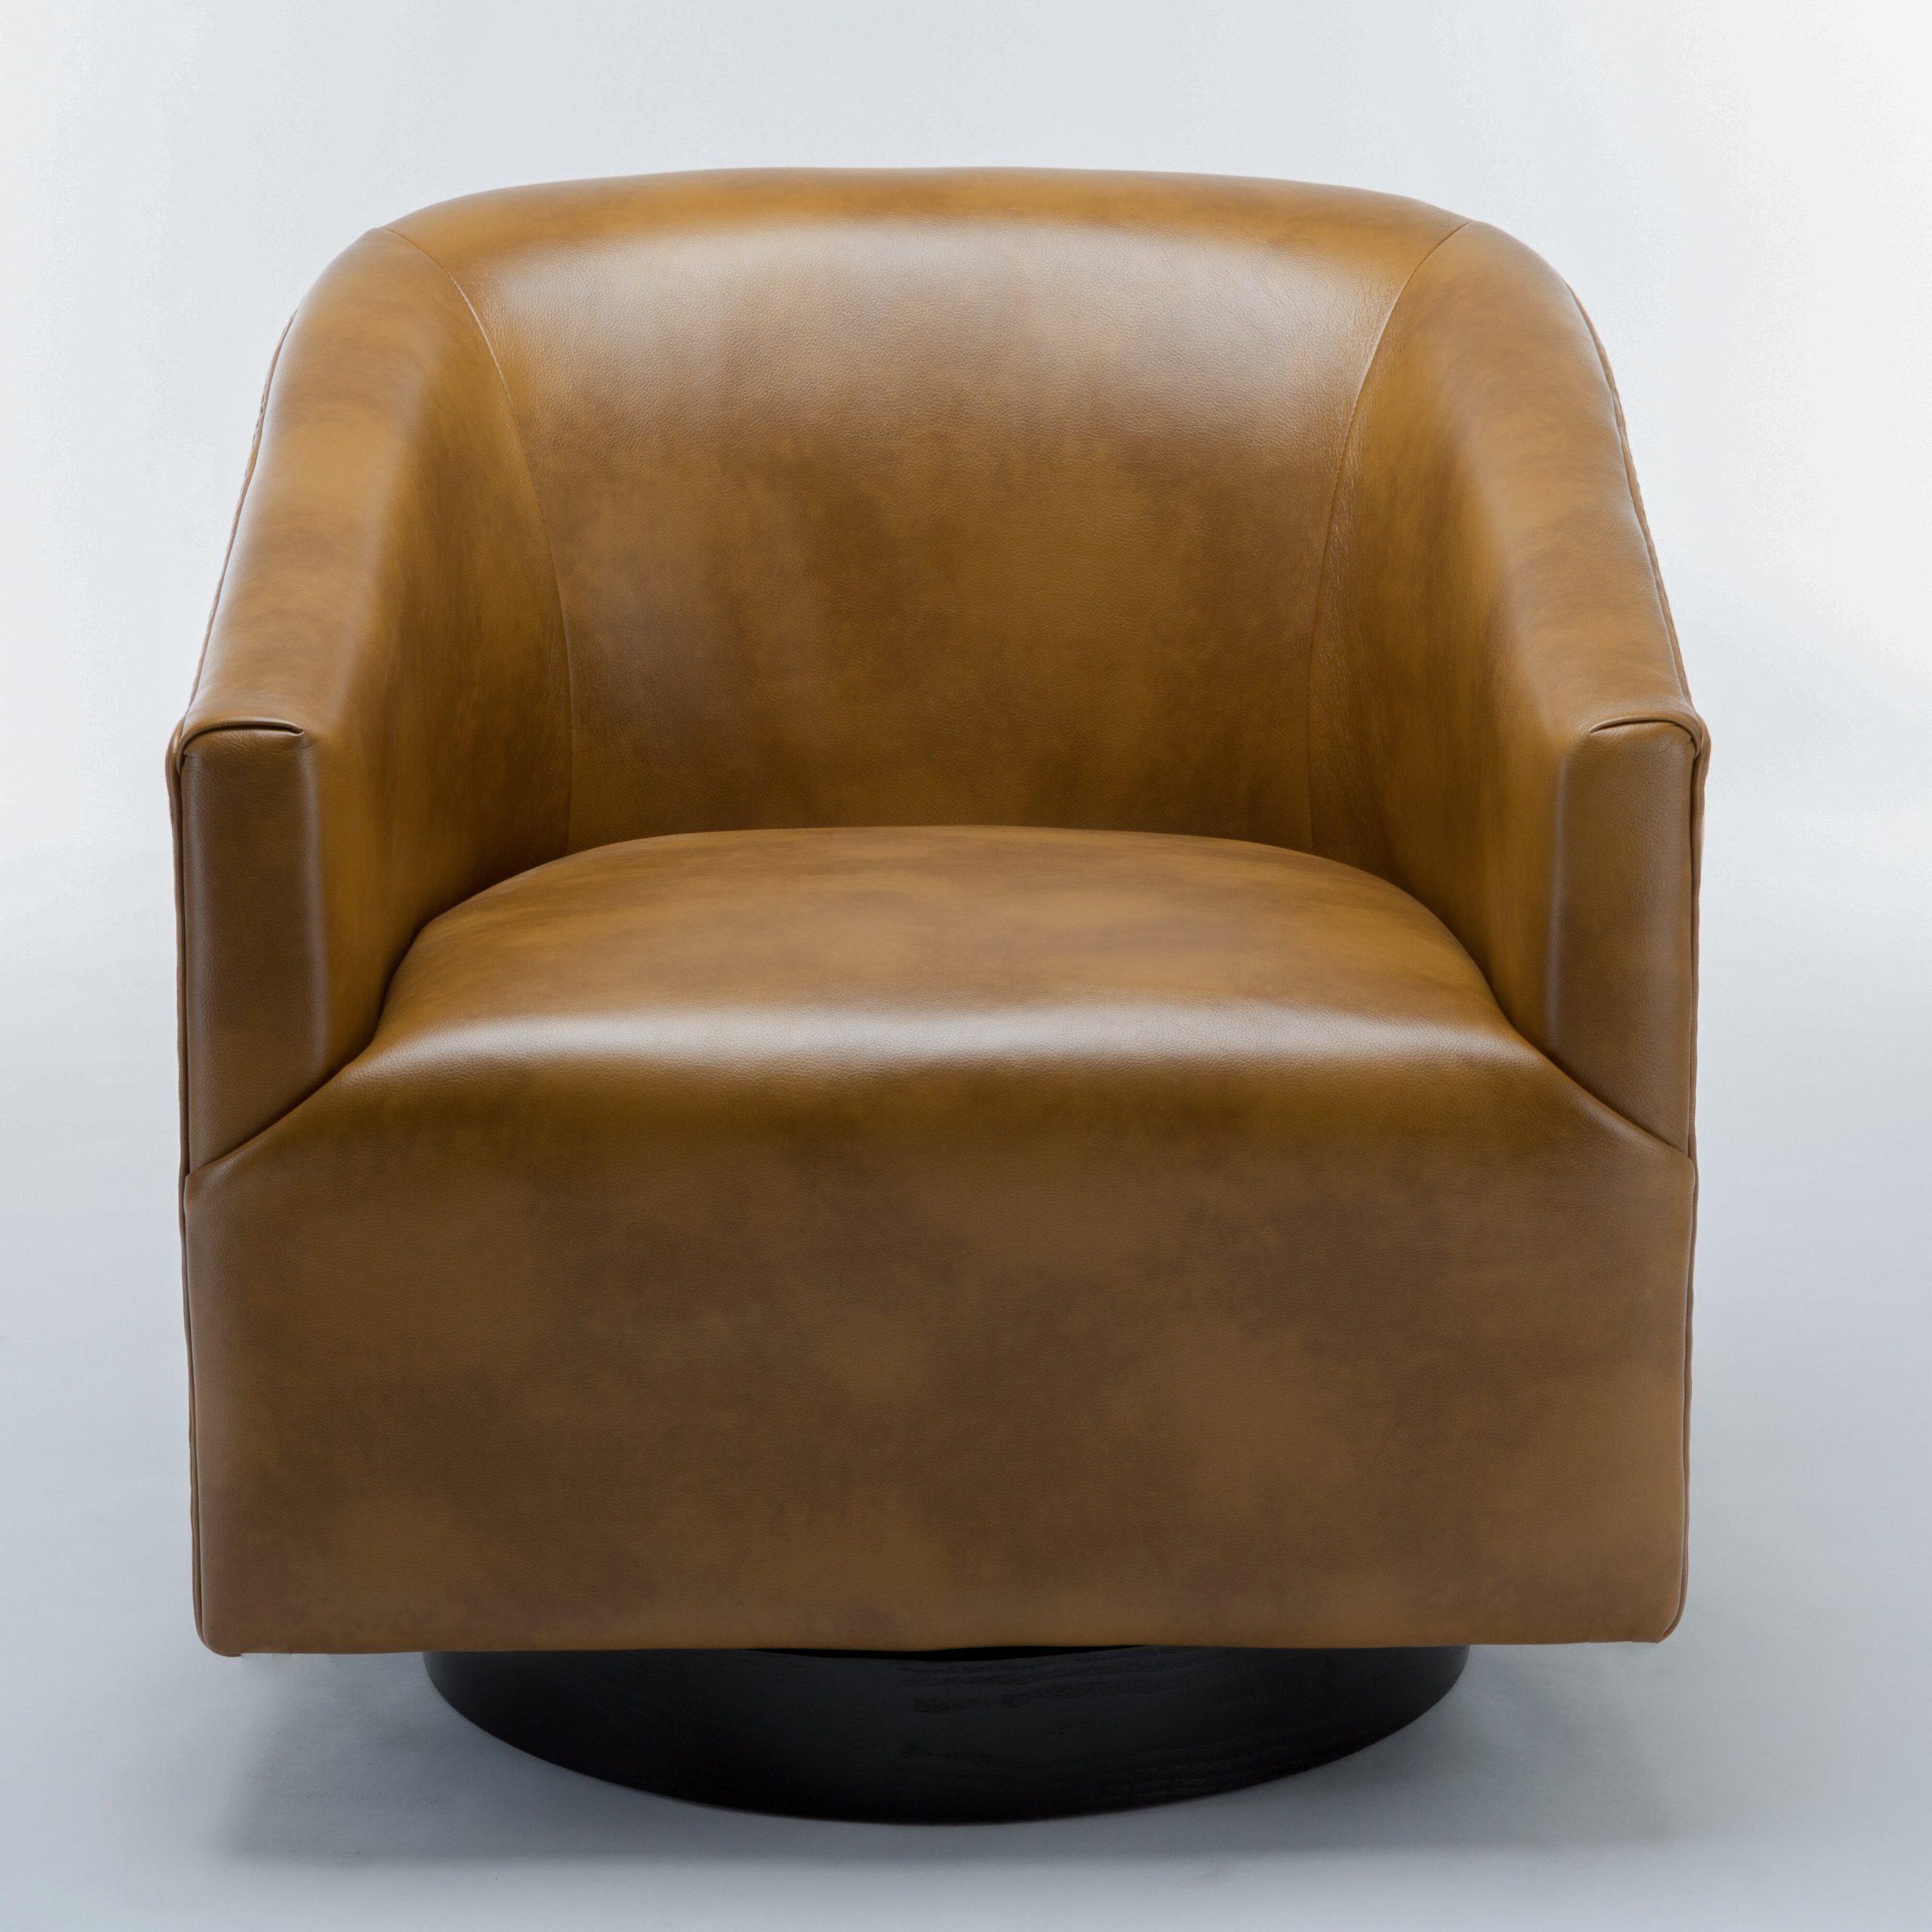 "Faux Leather Barrel Chairs Inside 2019 Mcintyre 30"" W Faux Leather Swivel Barrel Chair (View 3 of 20)"